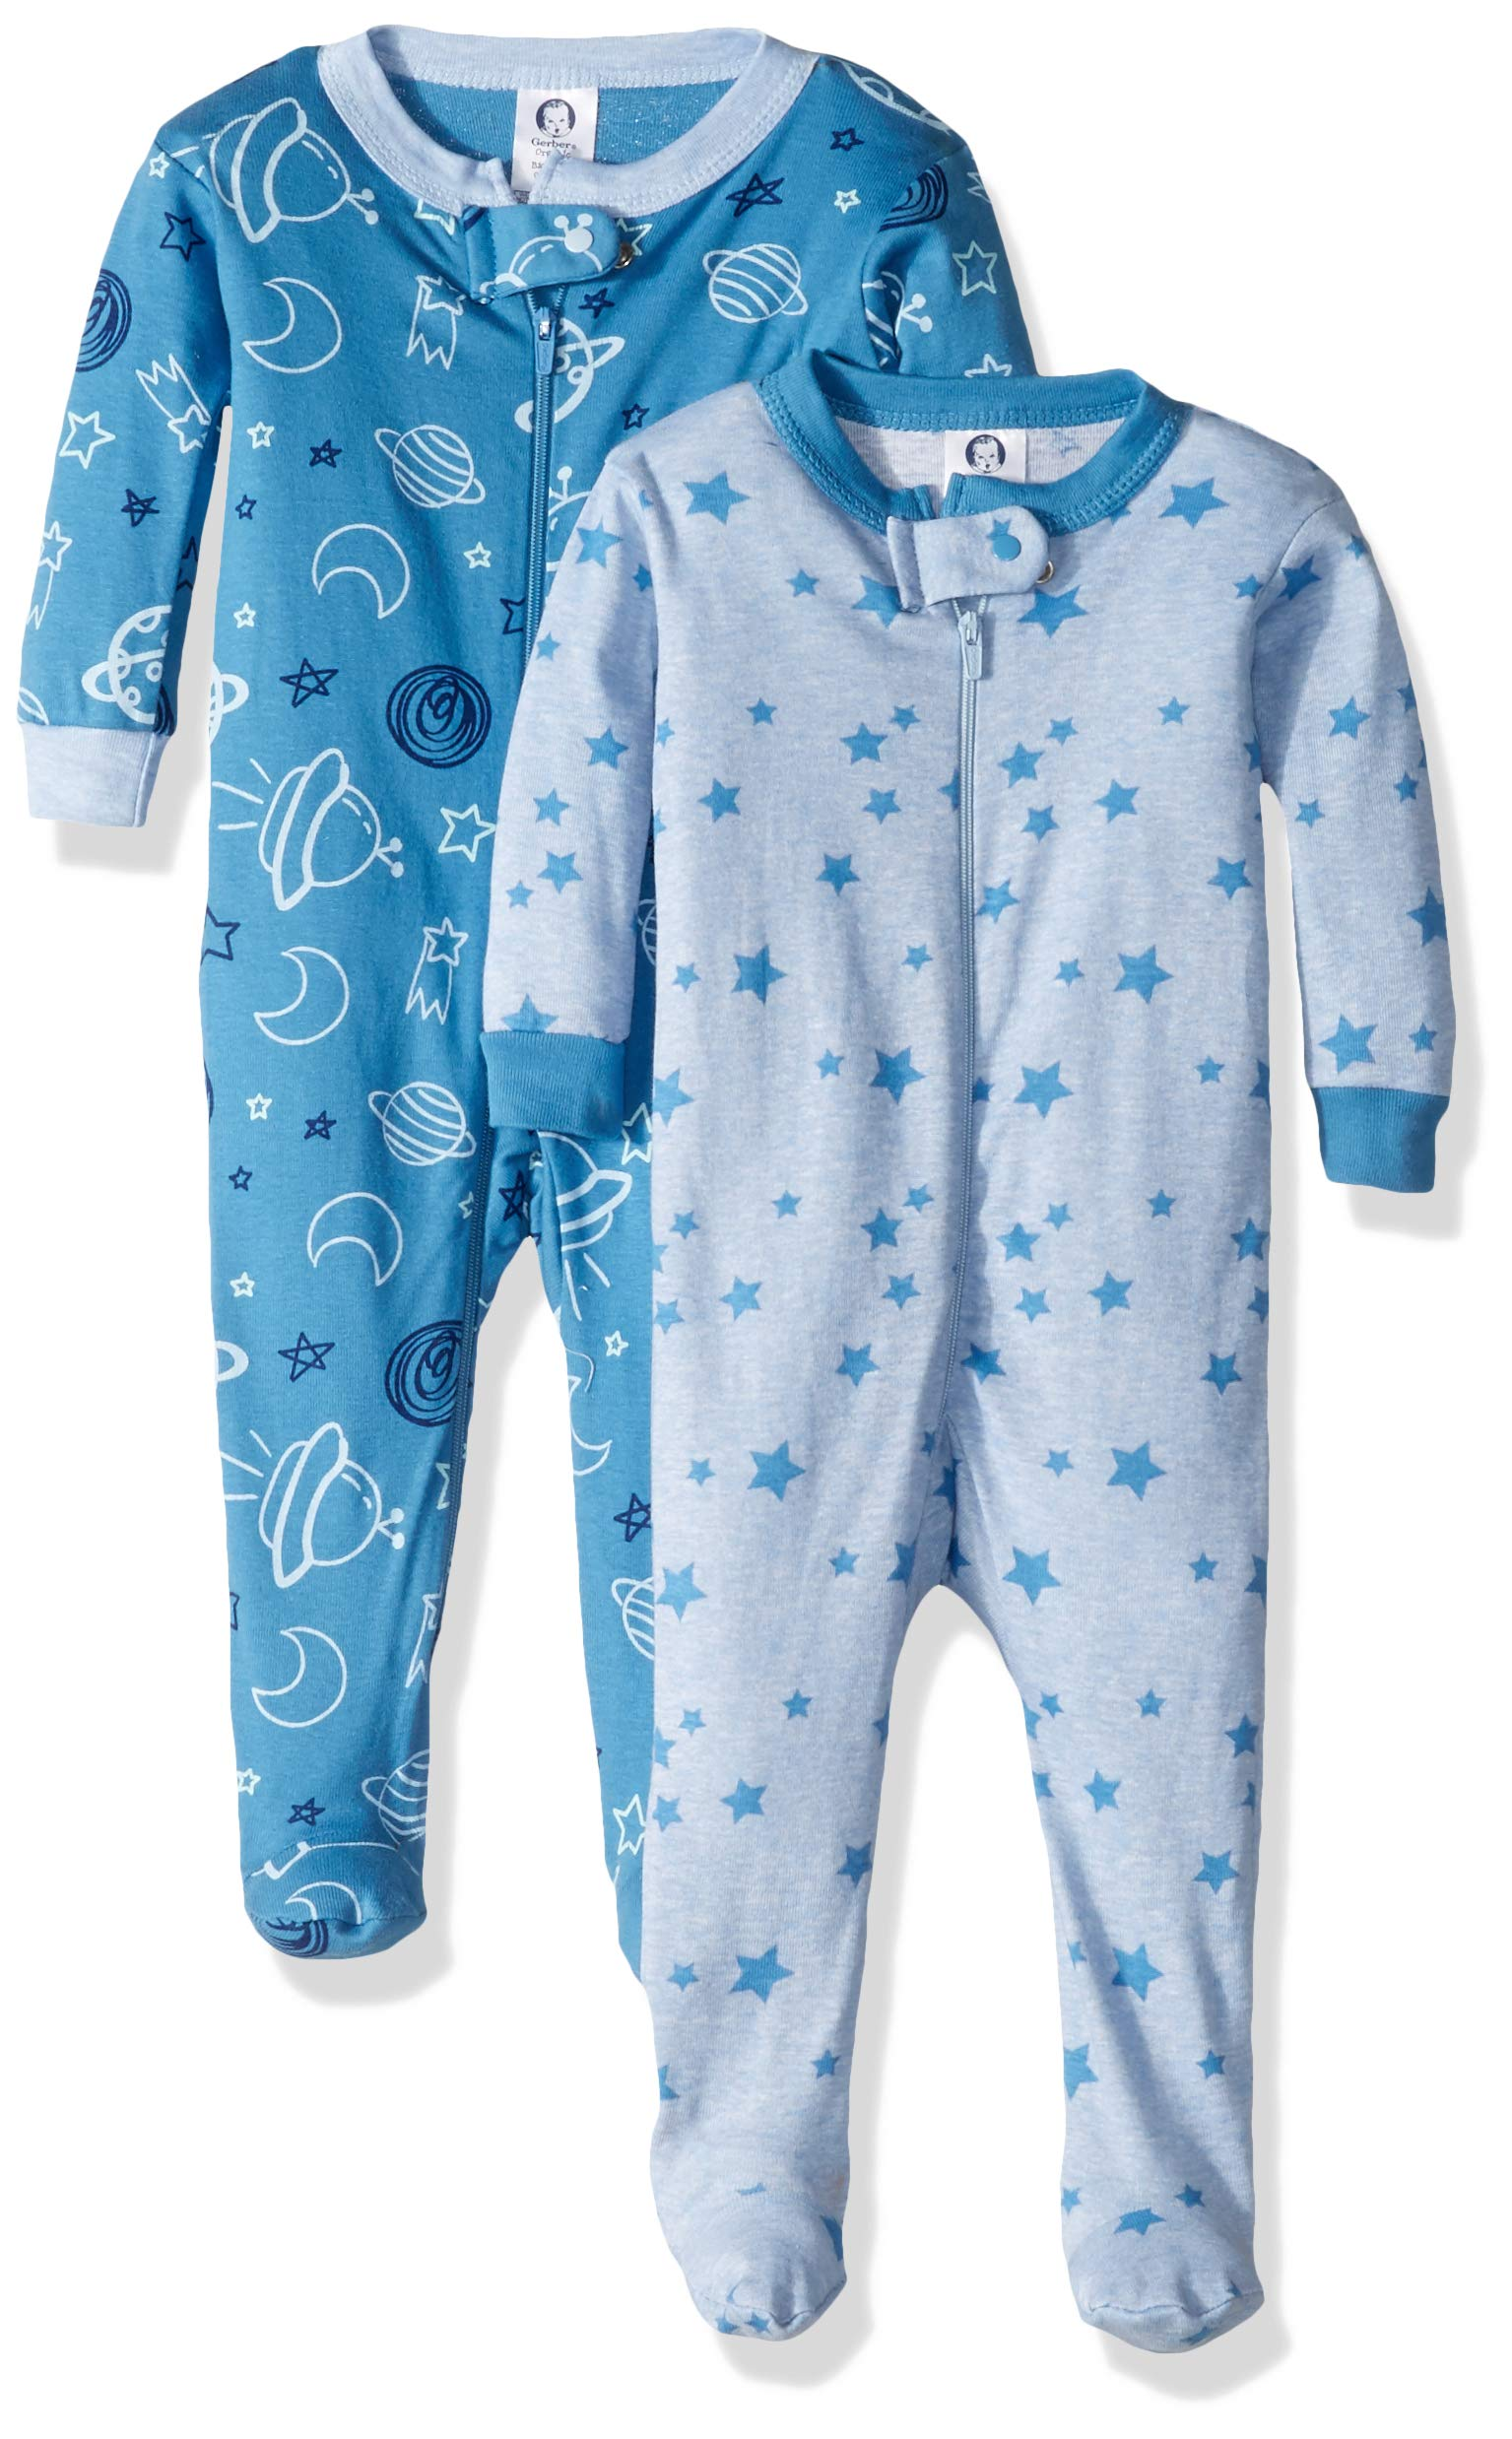 Gerber Baby Boys' Organic 2 Pack Cotton Footed Unionsuit